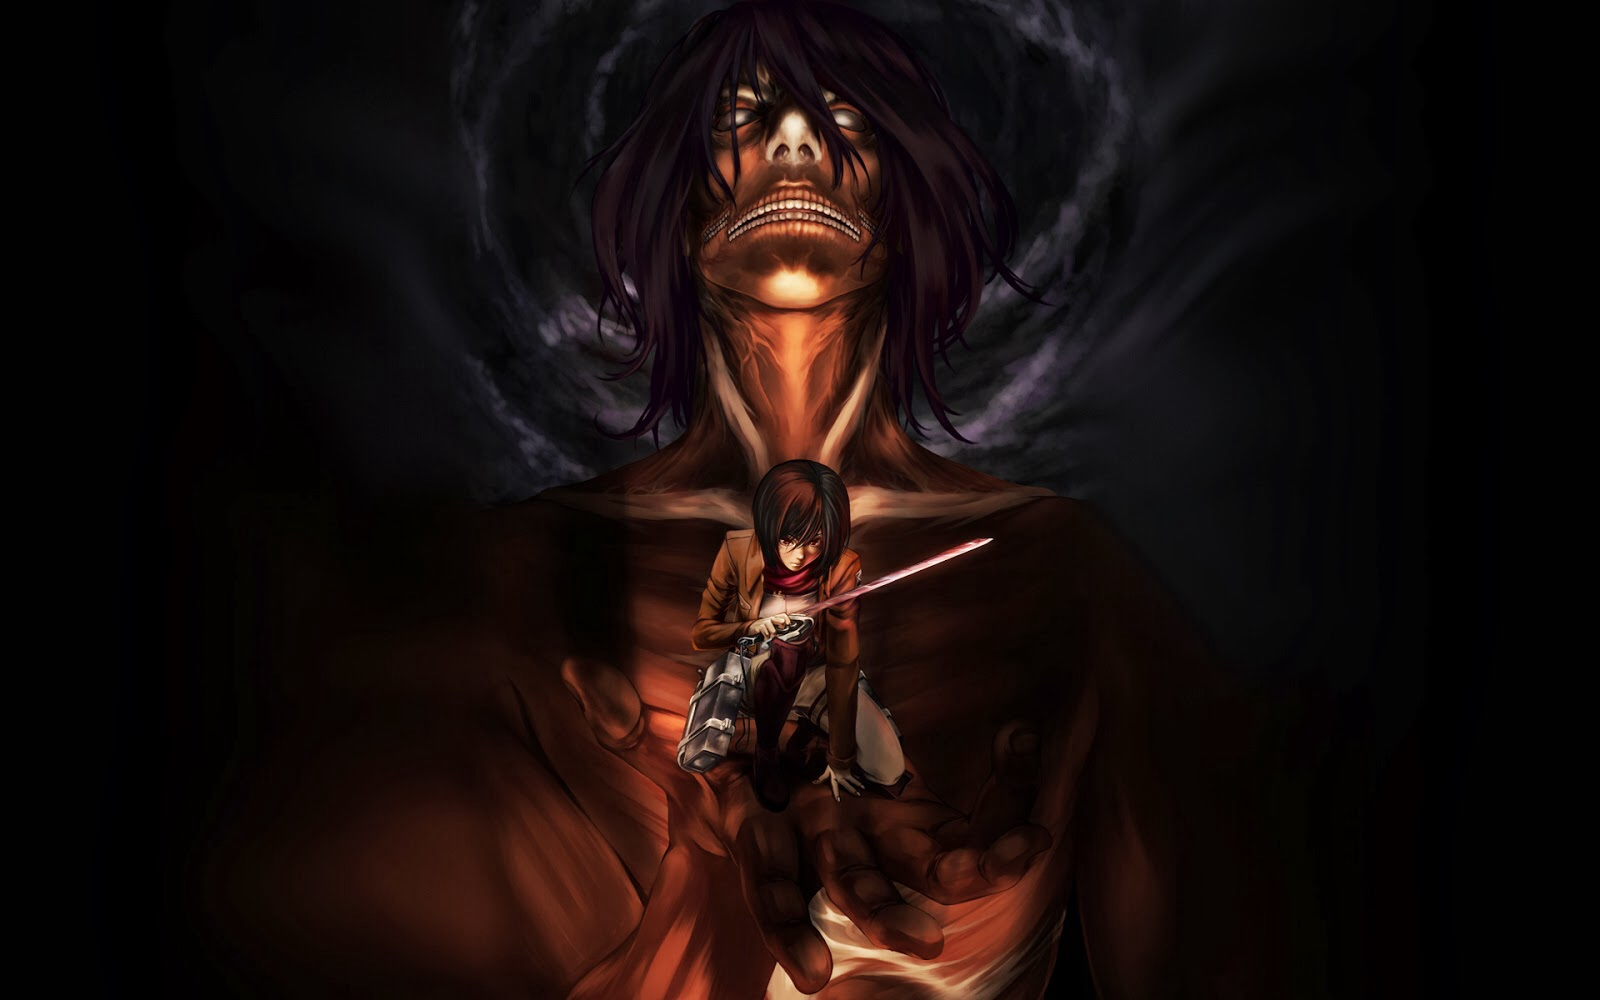 Attack On Titan Wallpaper Eren 2233109 Hd Wallpaper Backgrounds Download